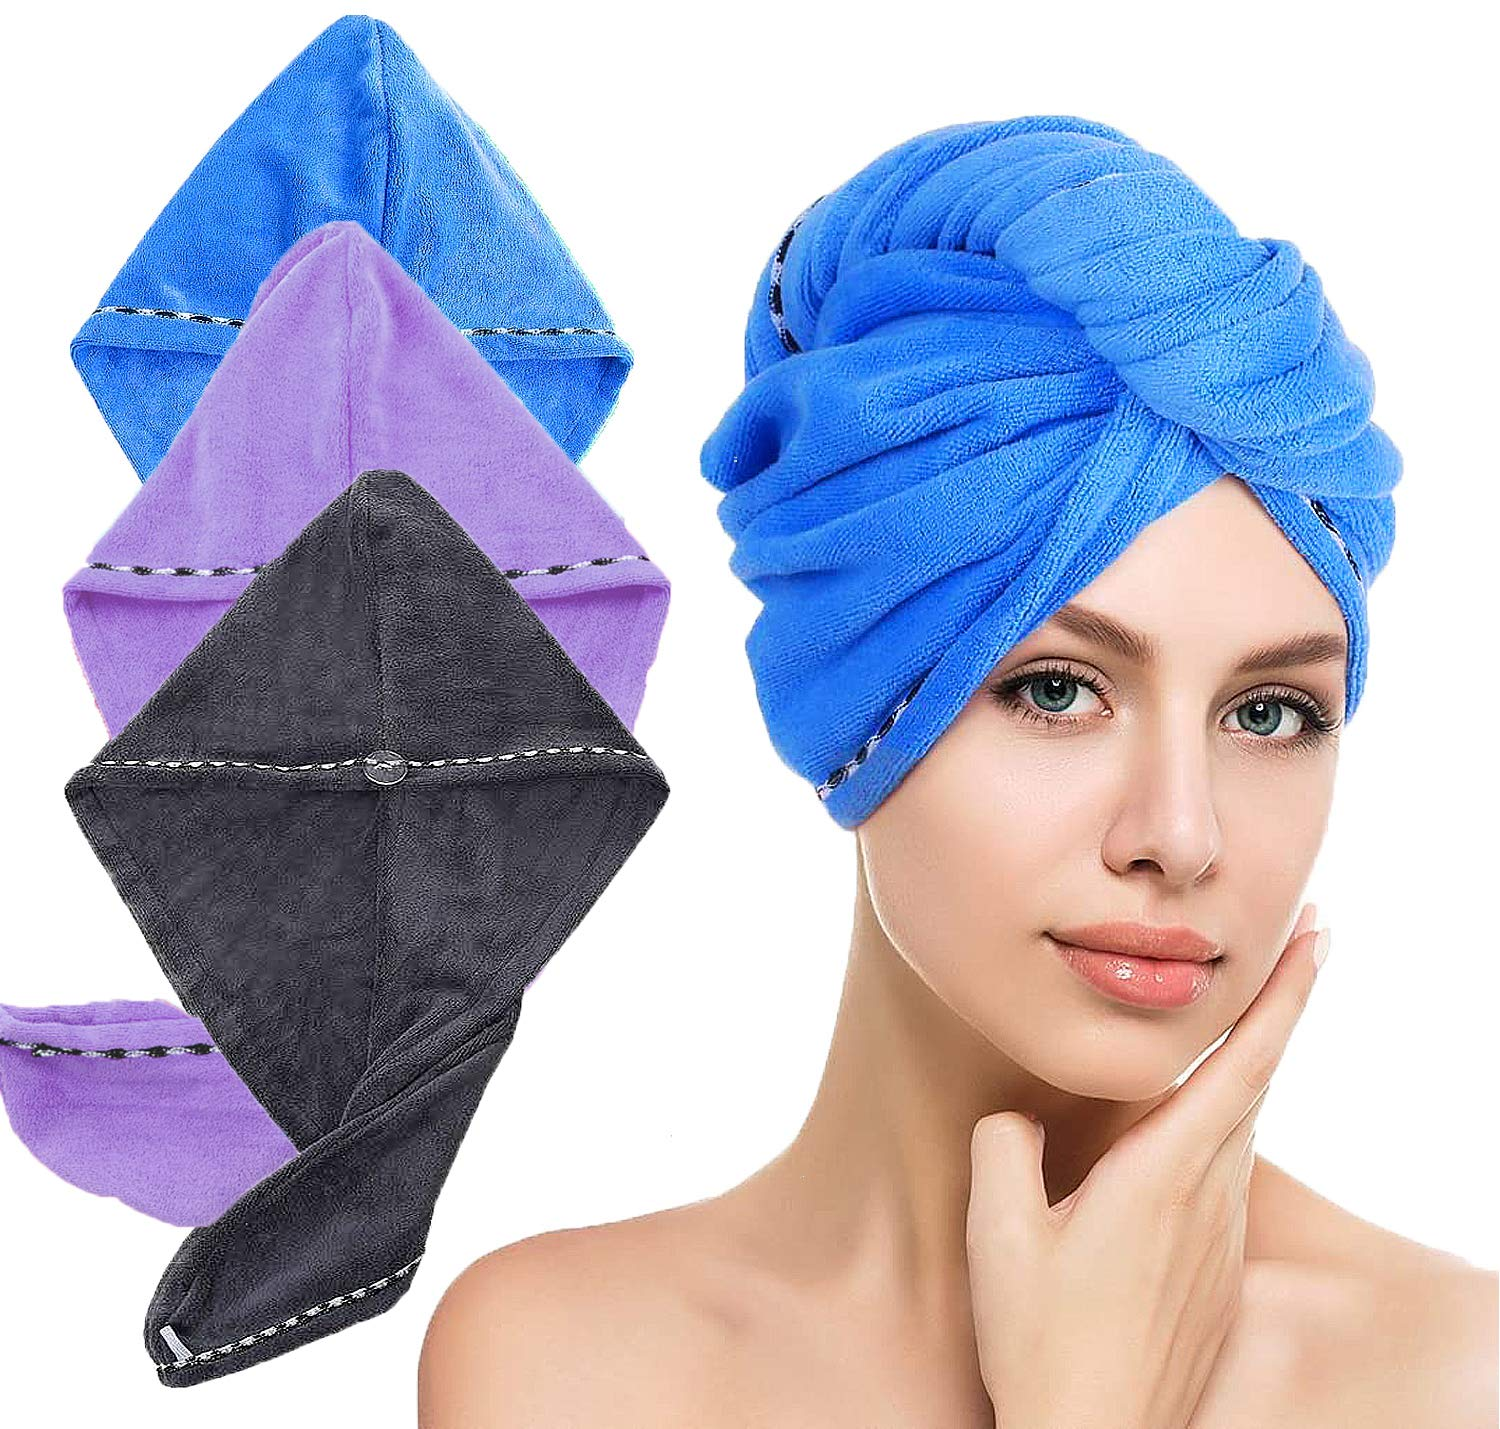 LayYun Super beauty product restock quality top Hair Towel Wrap for Women Absorbe Pcs Microfiber Easy-to-use 3